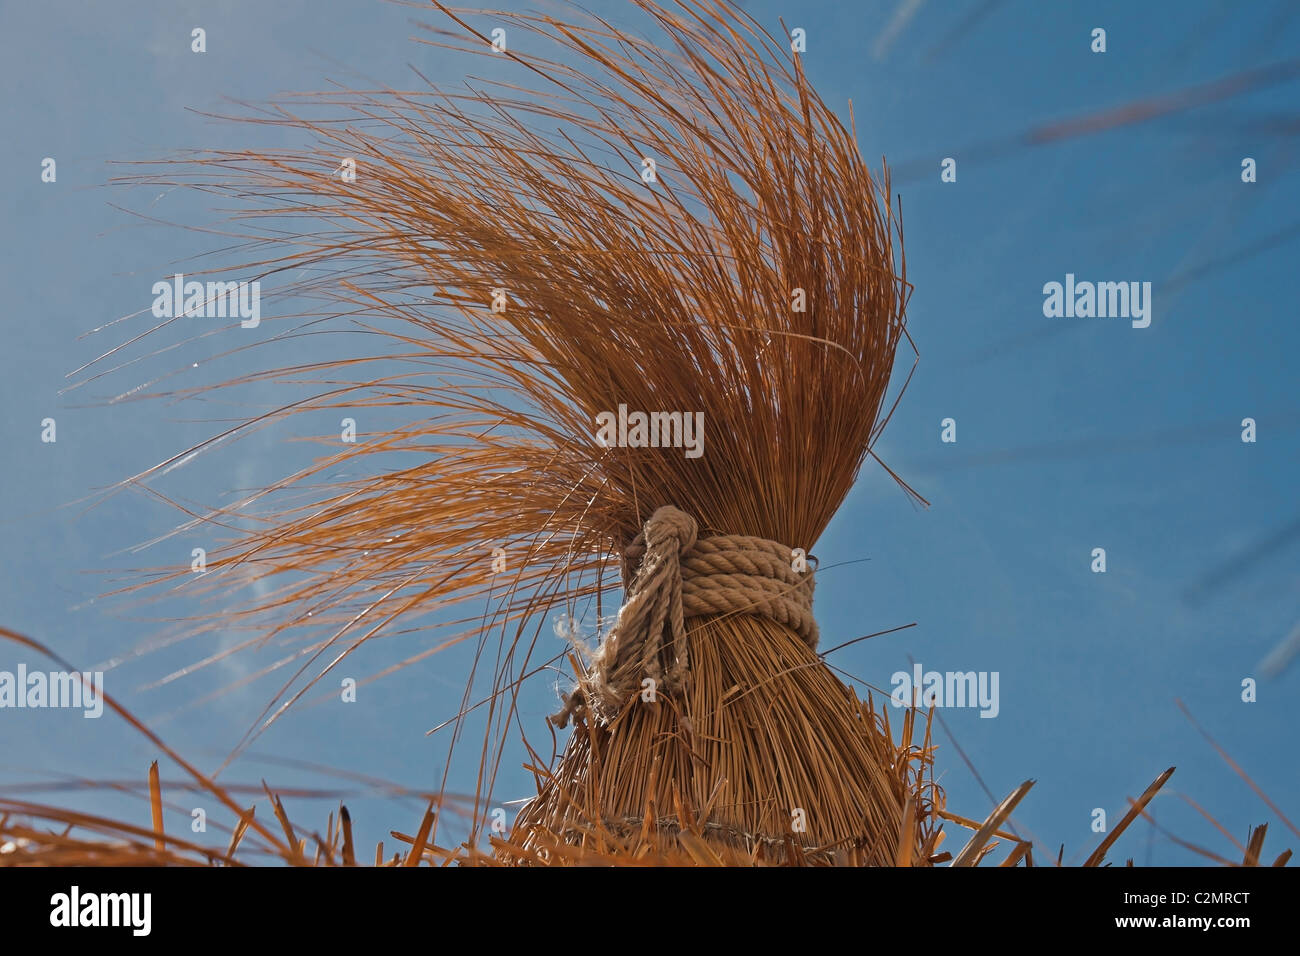 a windy day - Stock Image